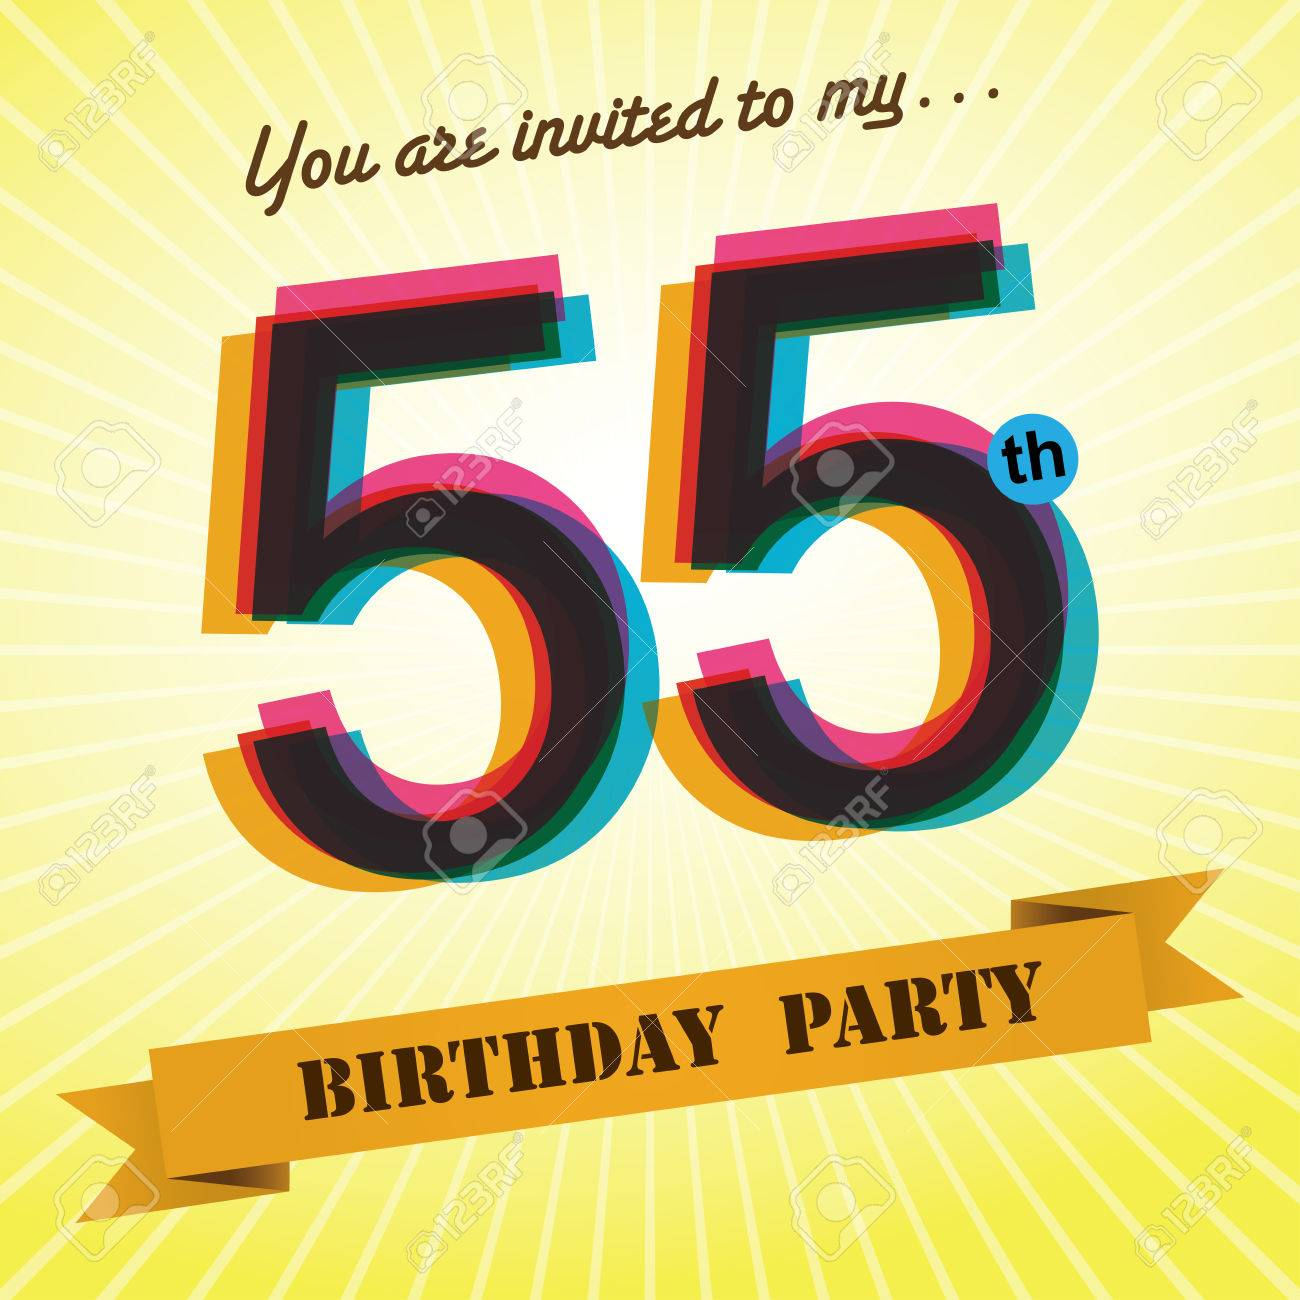 55th Birthday Party Invite Template Design Retro Style